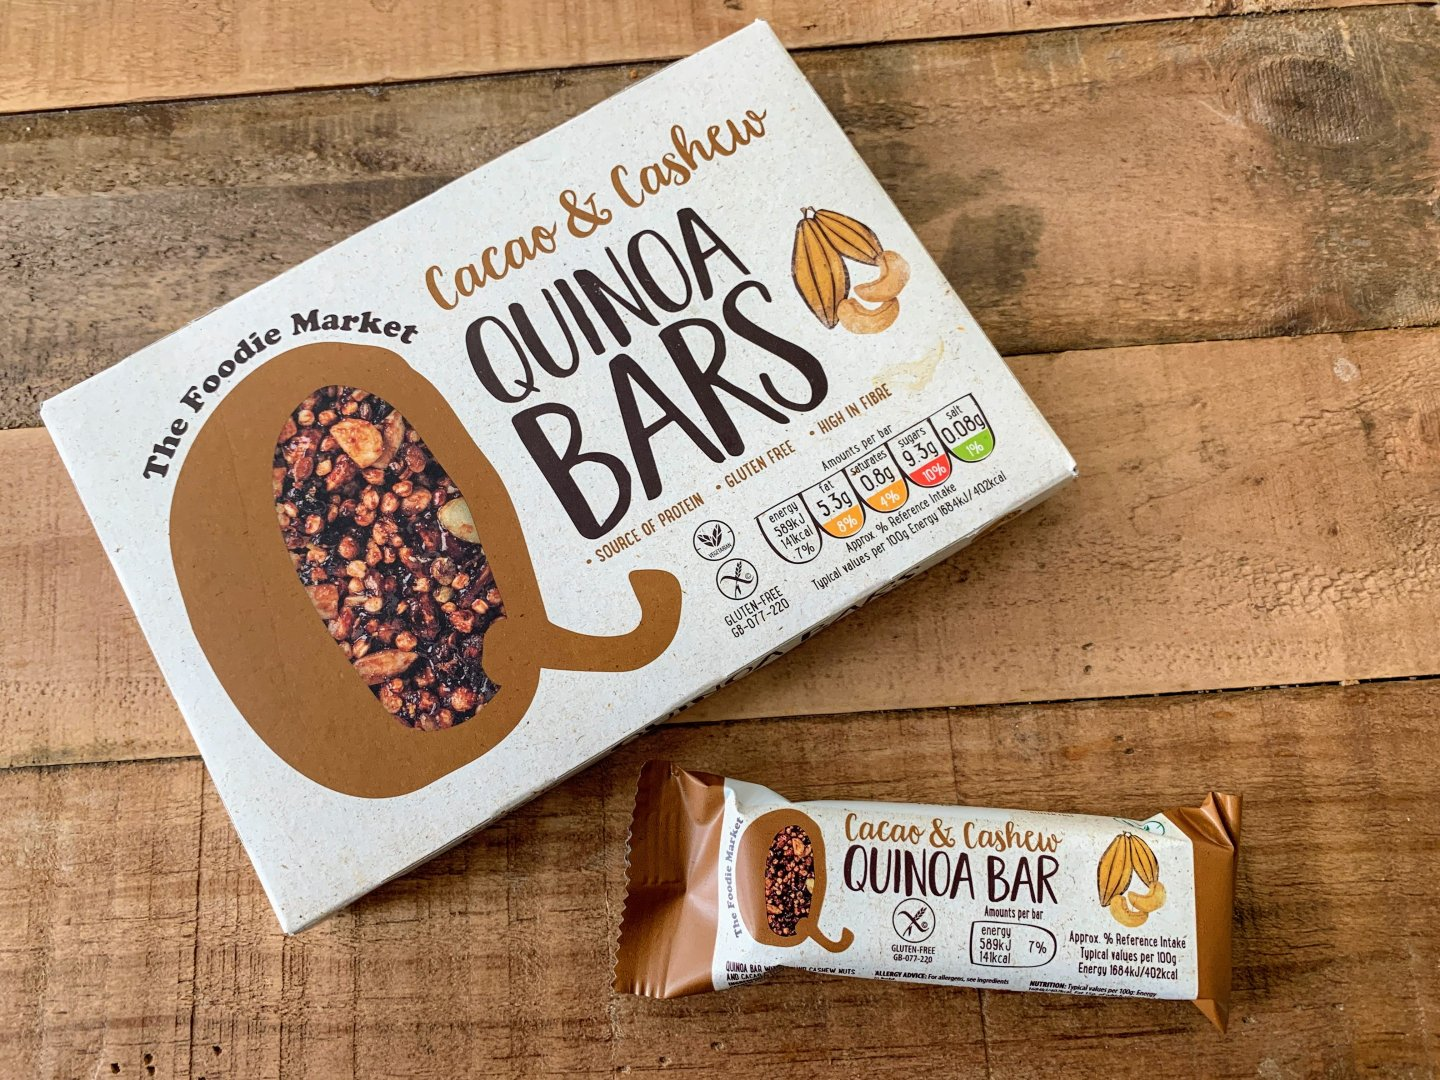 Cacao & Cashew Quinoa Bar – Product Review